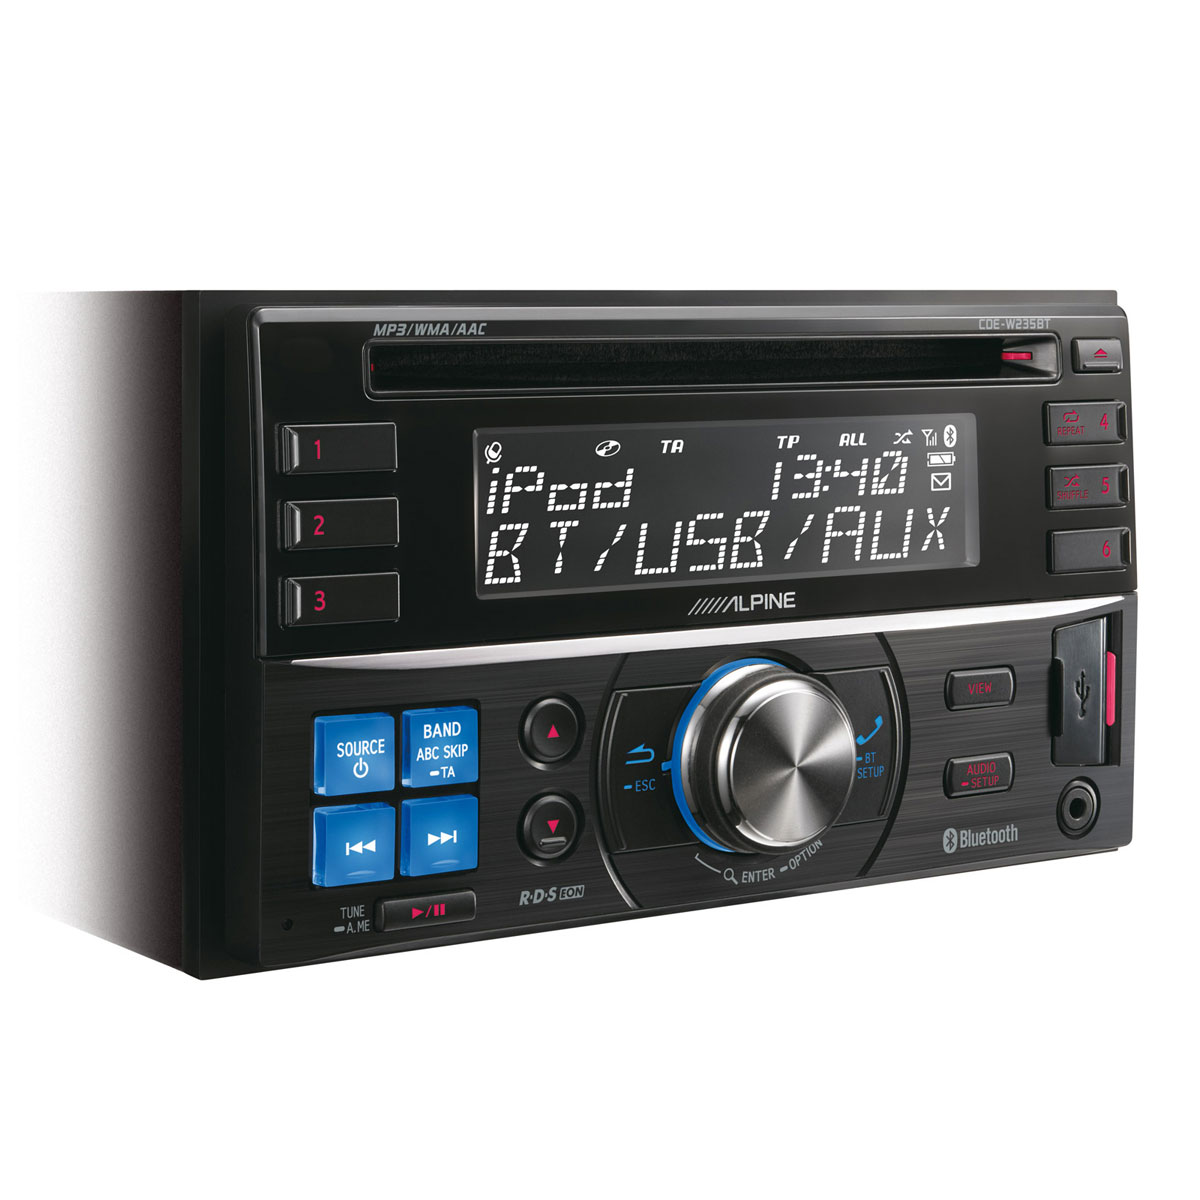 mon autoradio takara rdu 1540 avec entr e sd et usb toutankhamon expo fr. Black Bedroom Furniture Sets. Home Design Ideas